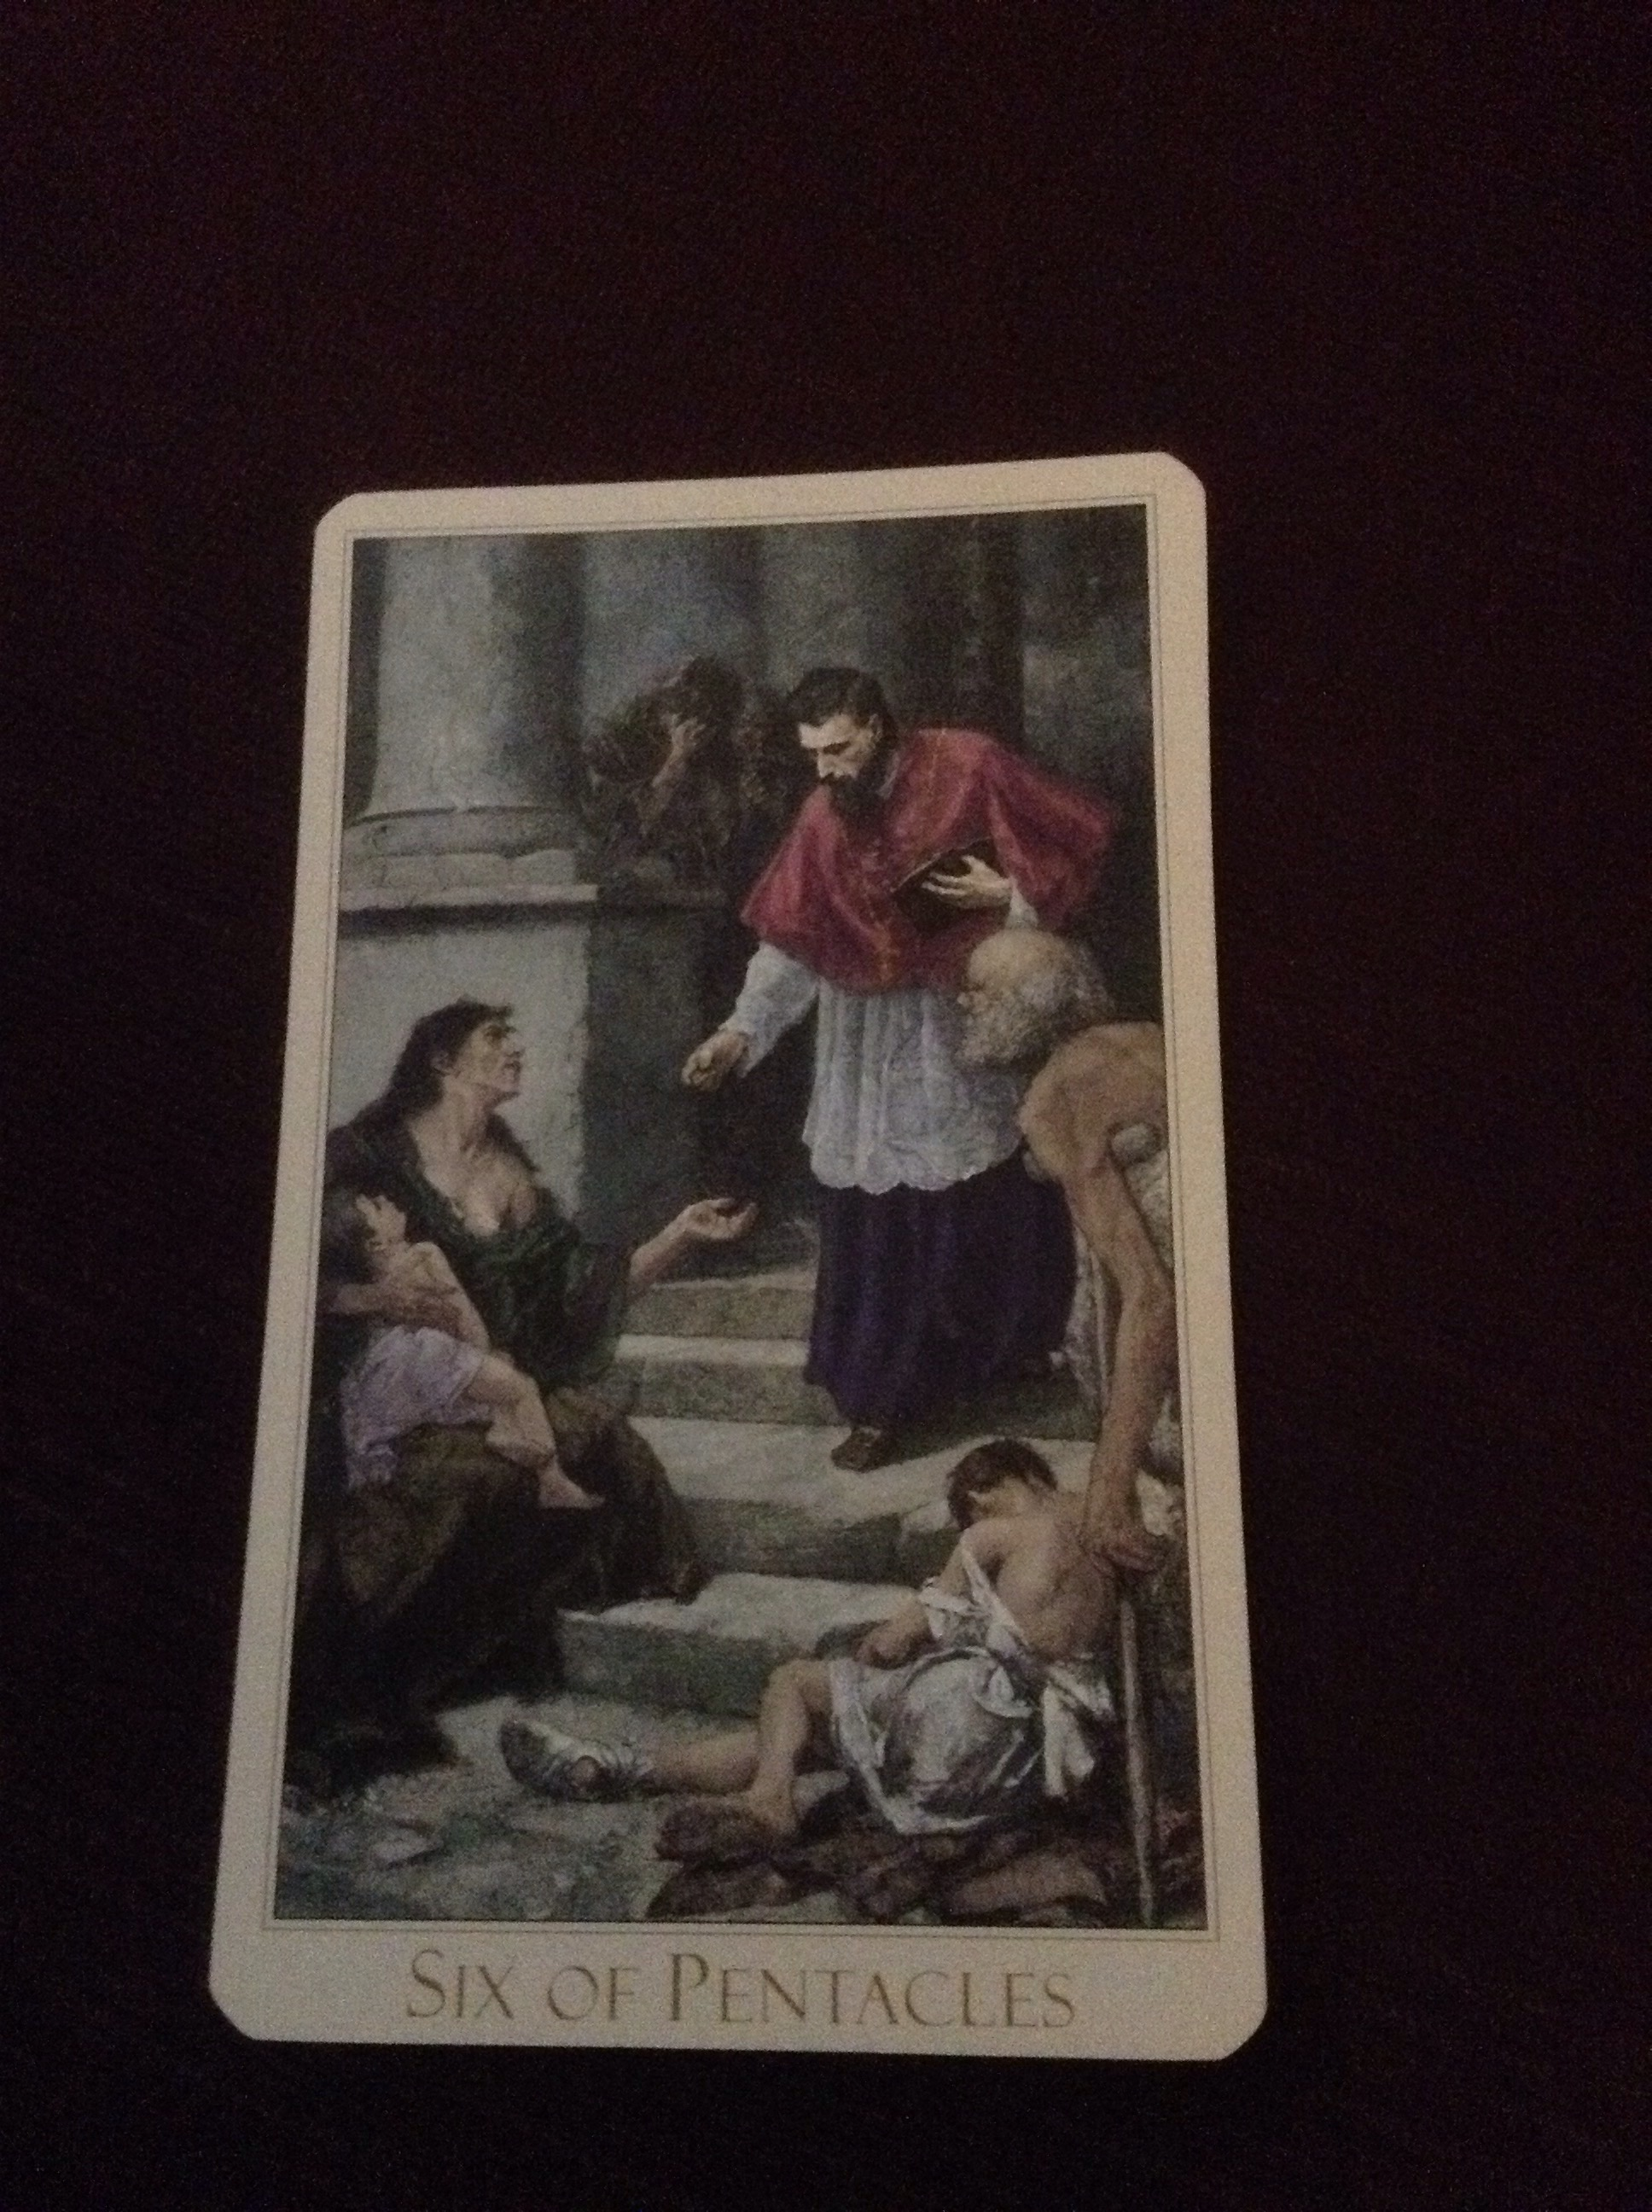 6 Of Pentacles As Advice